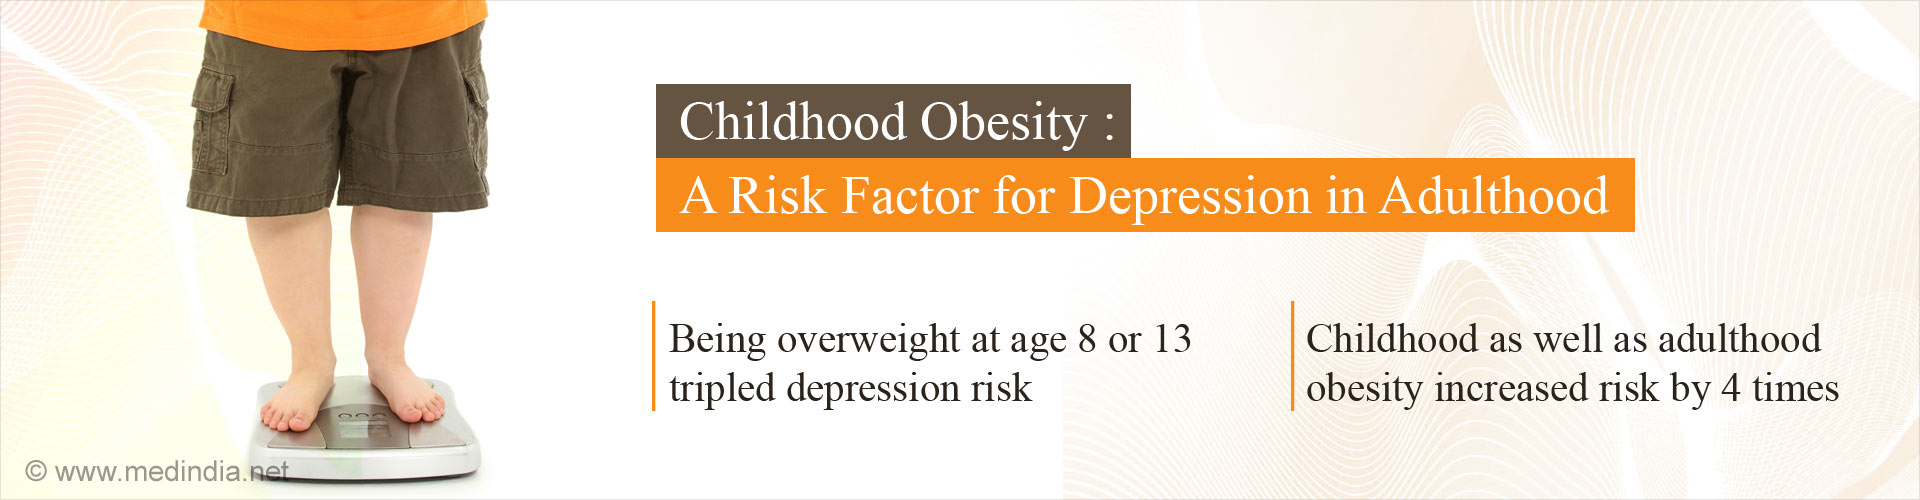 Childhood obesity: A risk factor for depression in adulthood - Being overweight at age 8 or 13 tripled depression risk - Childhood as well as adulthood obesity increased risk by 4 times